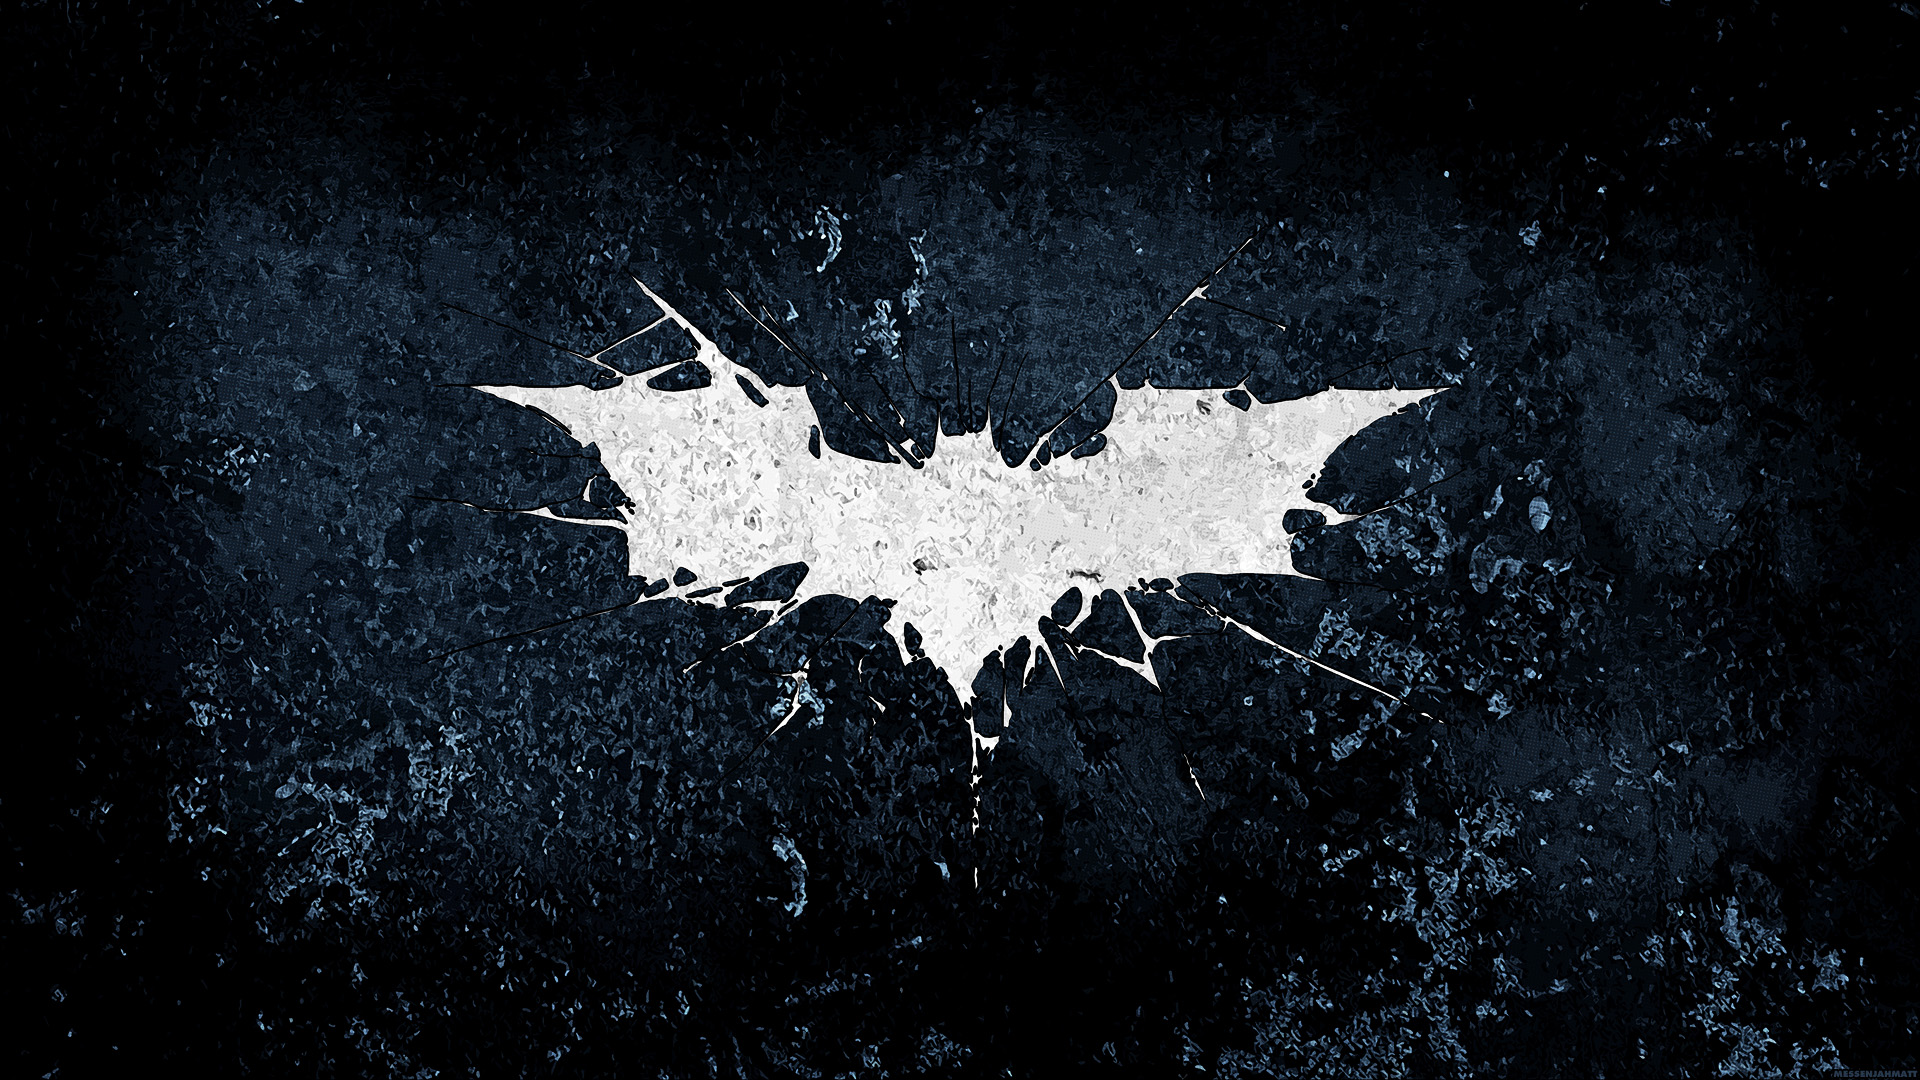 the dark knight rises hd wallpapers desktop backgrounds latest 2012 1920x1080